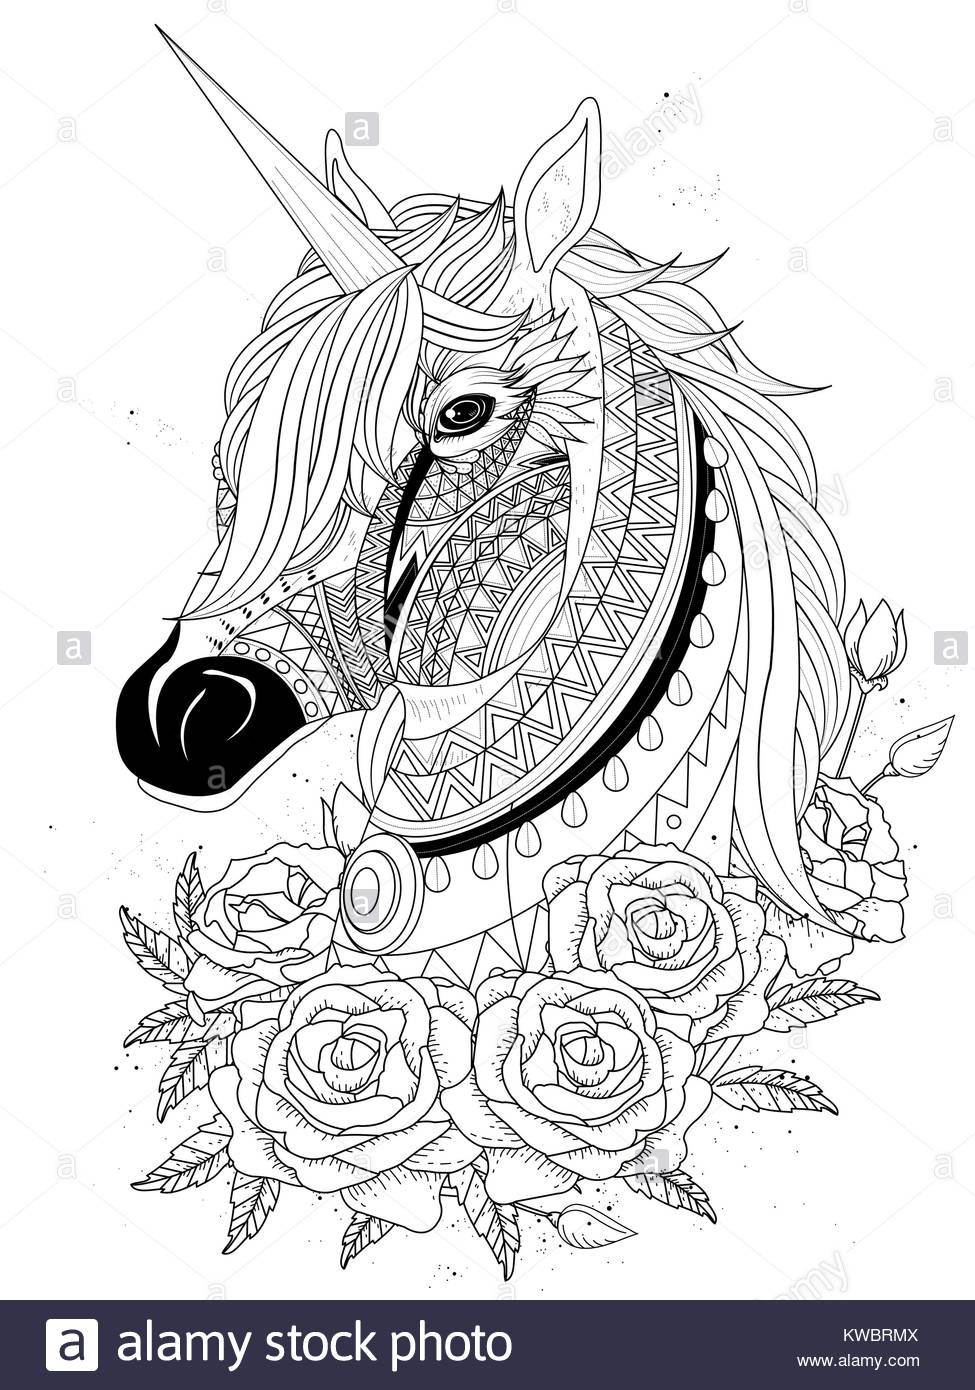 Unicorn Vector Stockfotos & Unicorn Vector Bilder - Alamy